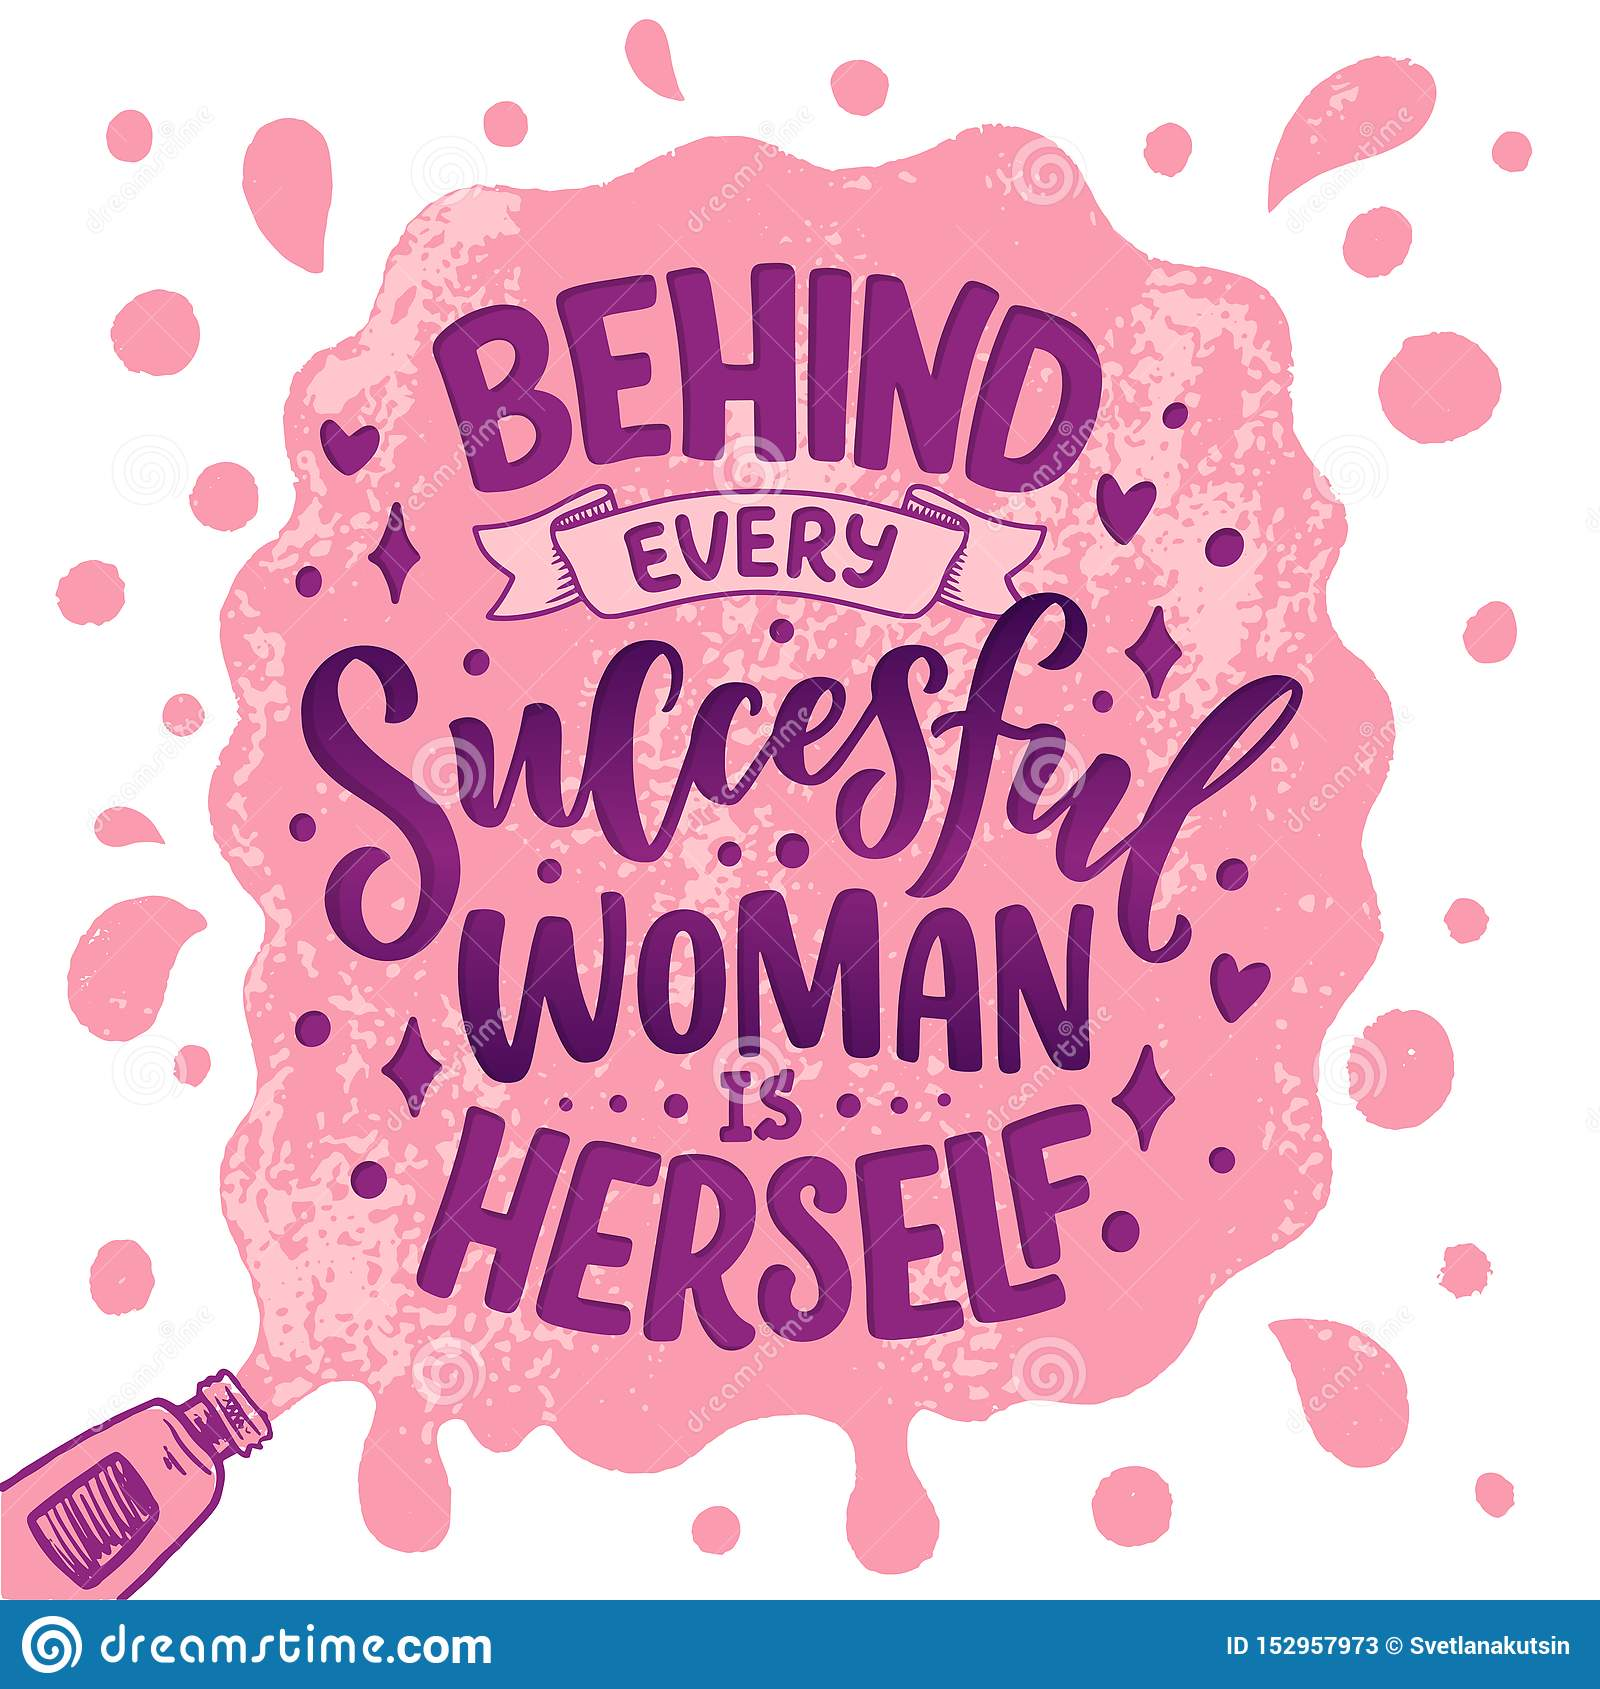 Beautiful illustration with lettering about woman. Handwritten inspirational motivational quote. Template design element